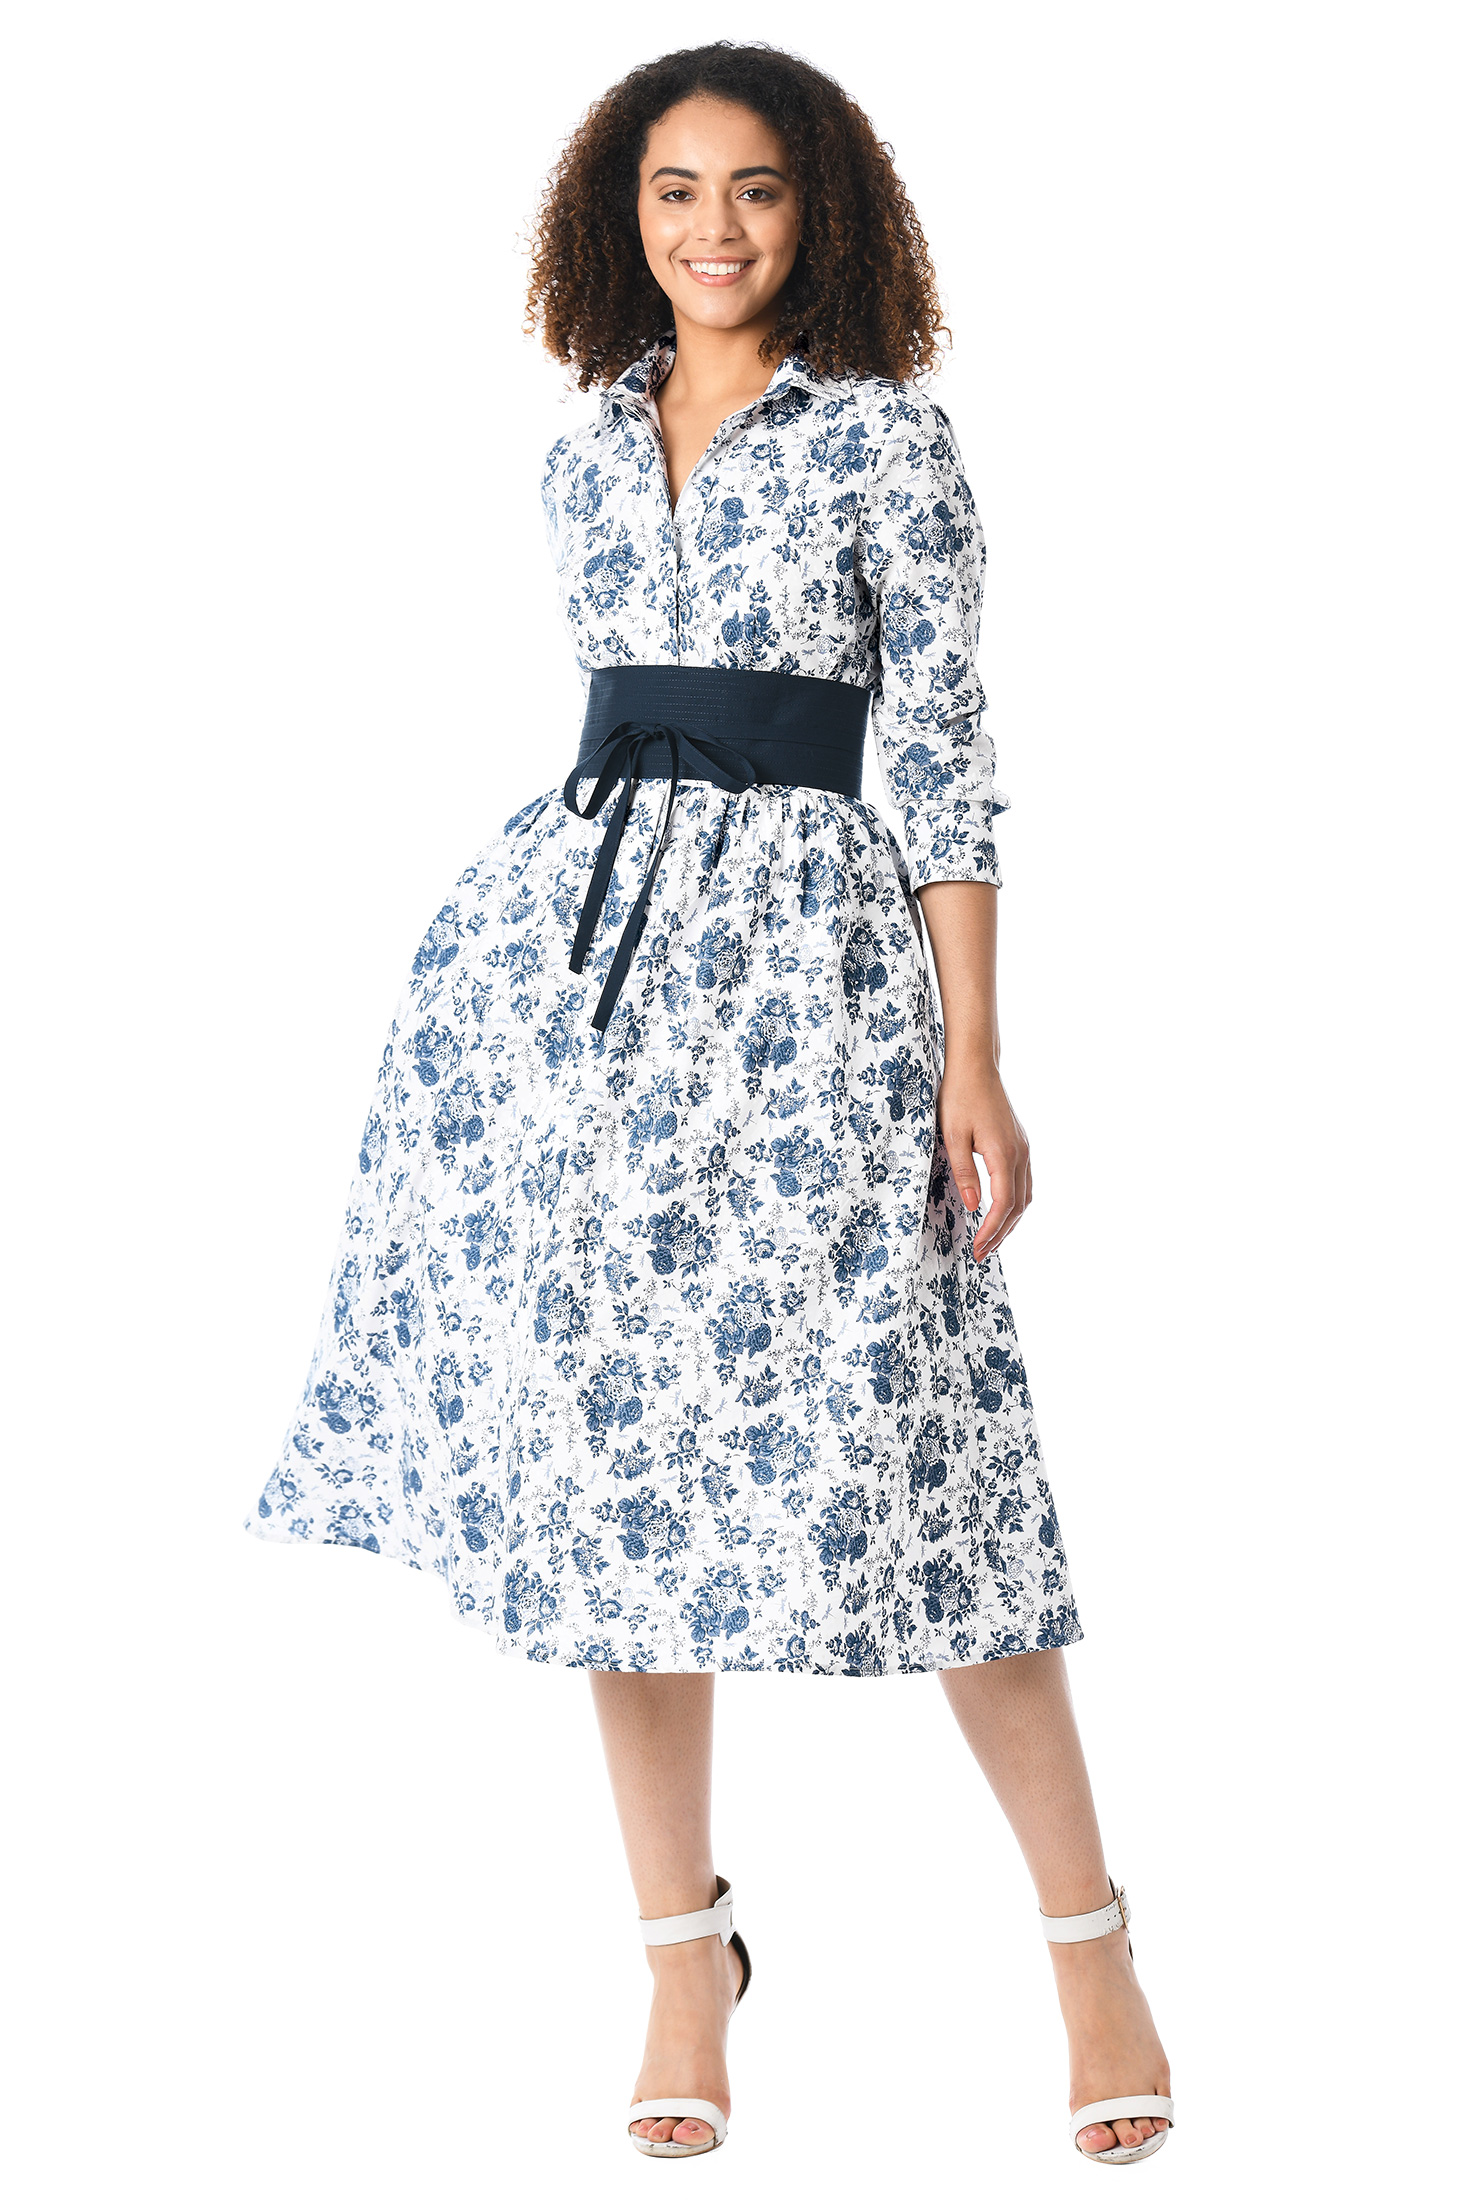 eShakti Women's Trapunto obi belt floral print cotton shirtdress